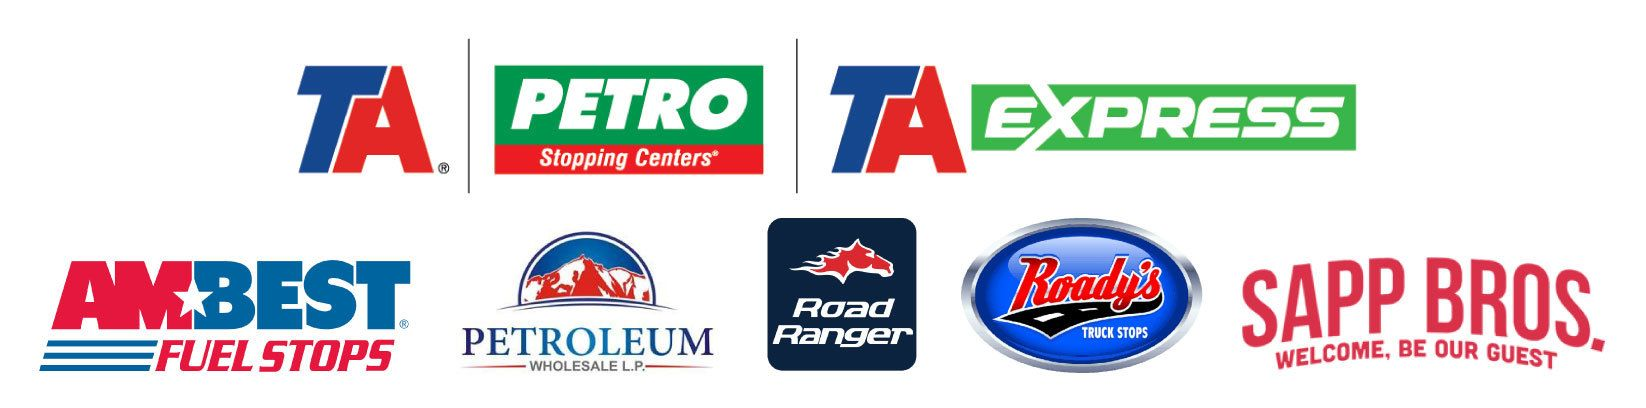 Cashway Funding now offering big fuel discounts at leading truckstops with the TCS Fuel Card